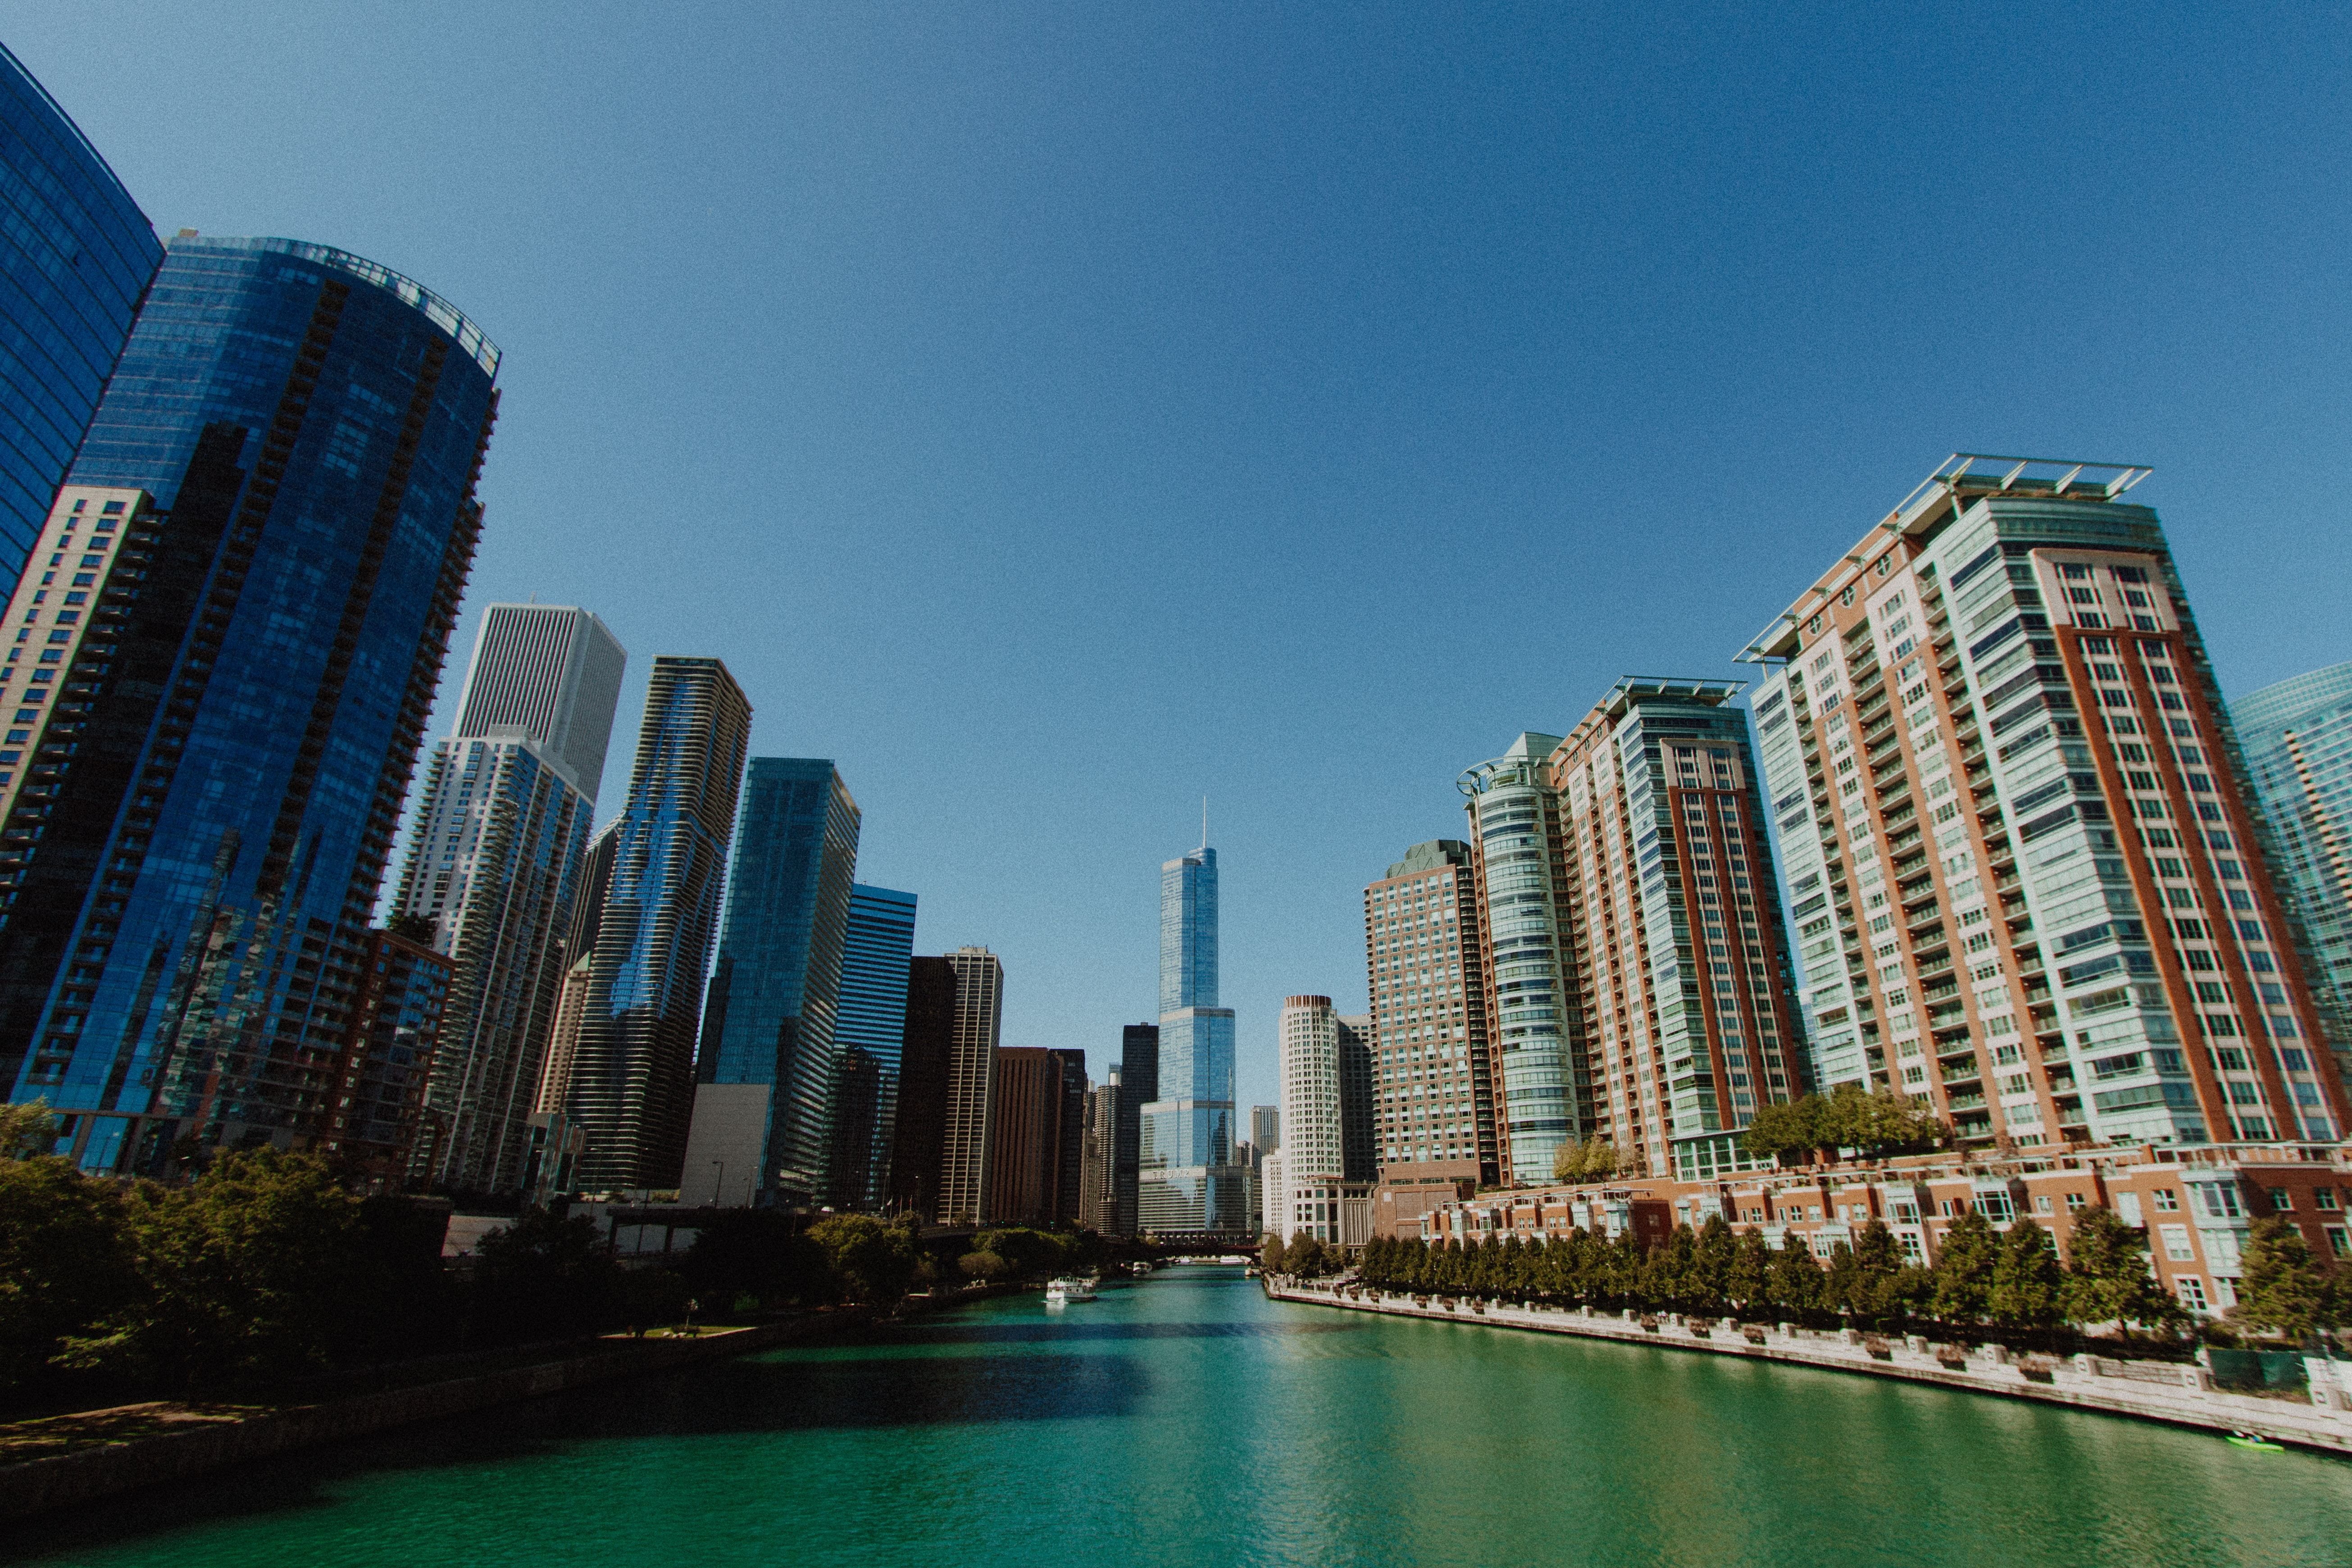 river flowing between high-rise buildings during daytime photo